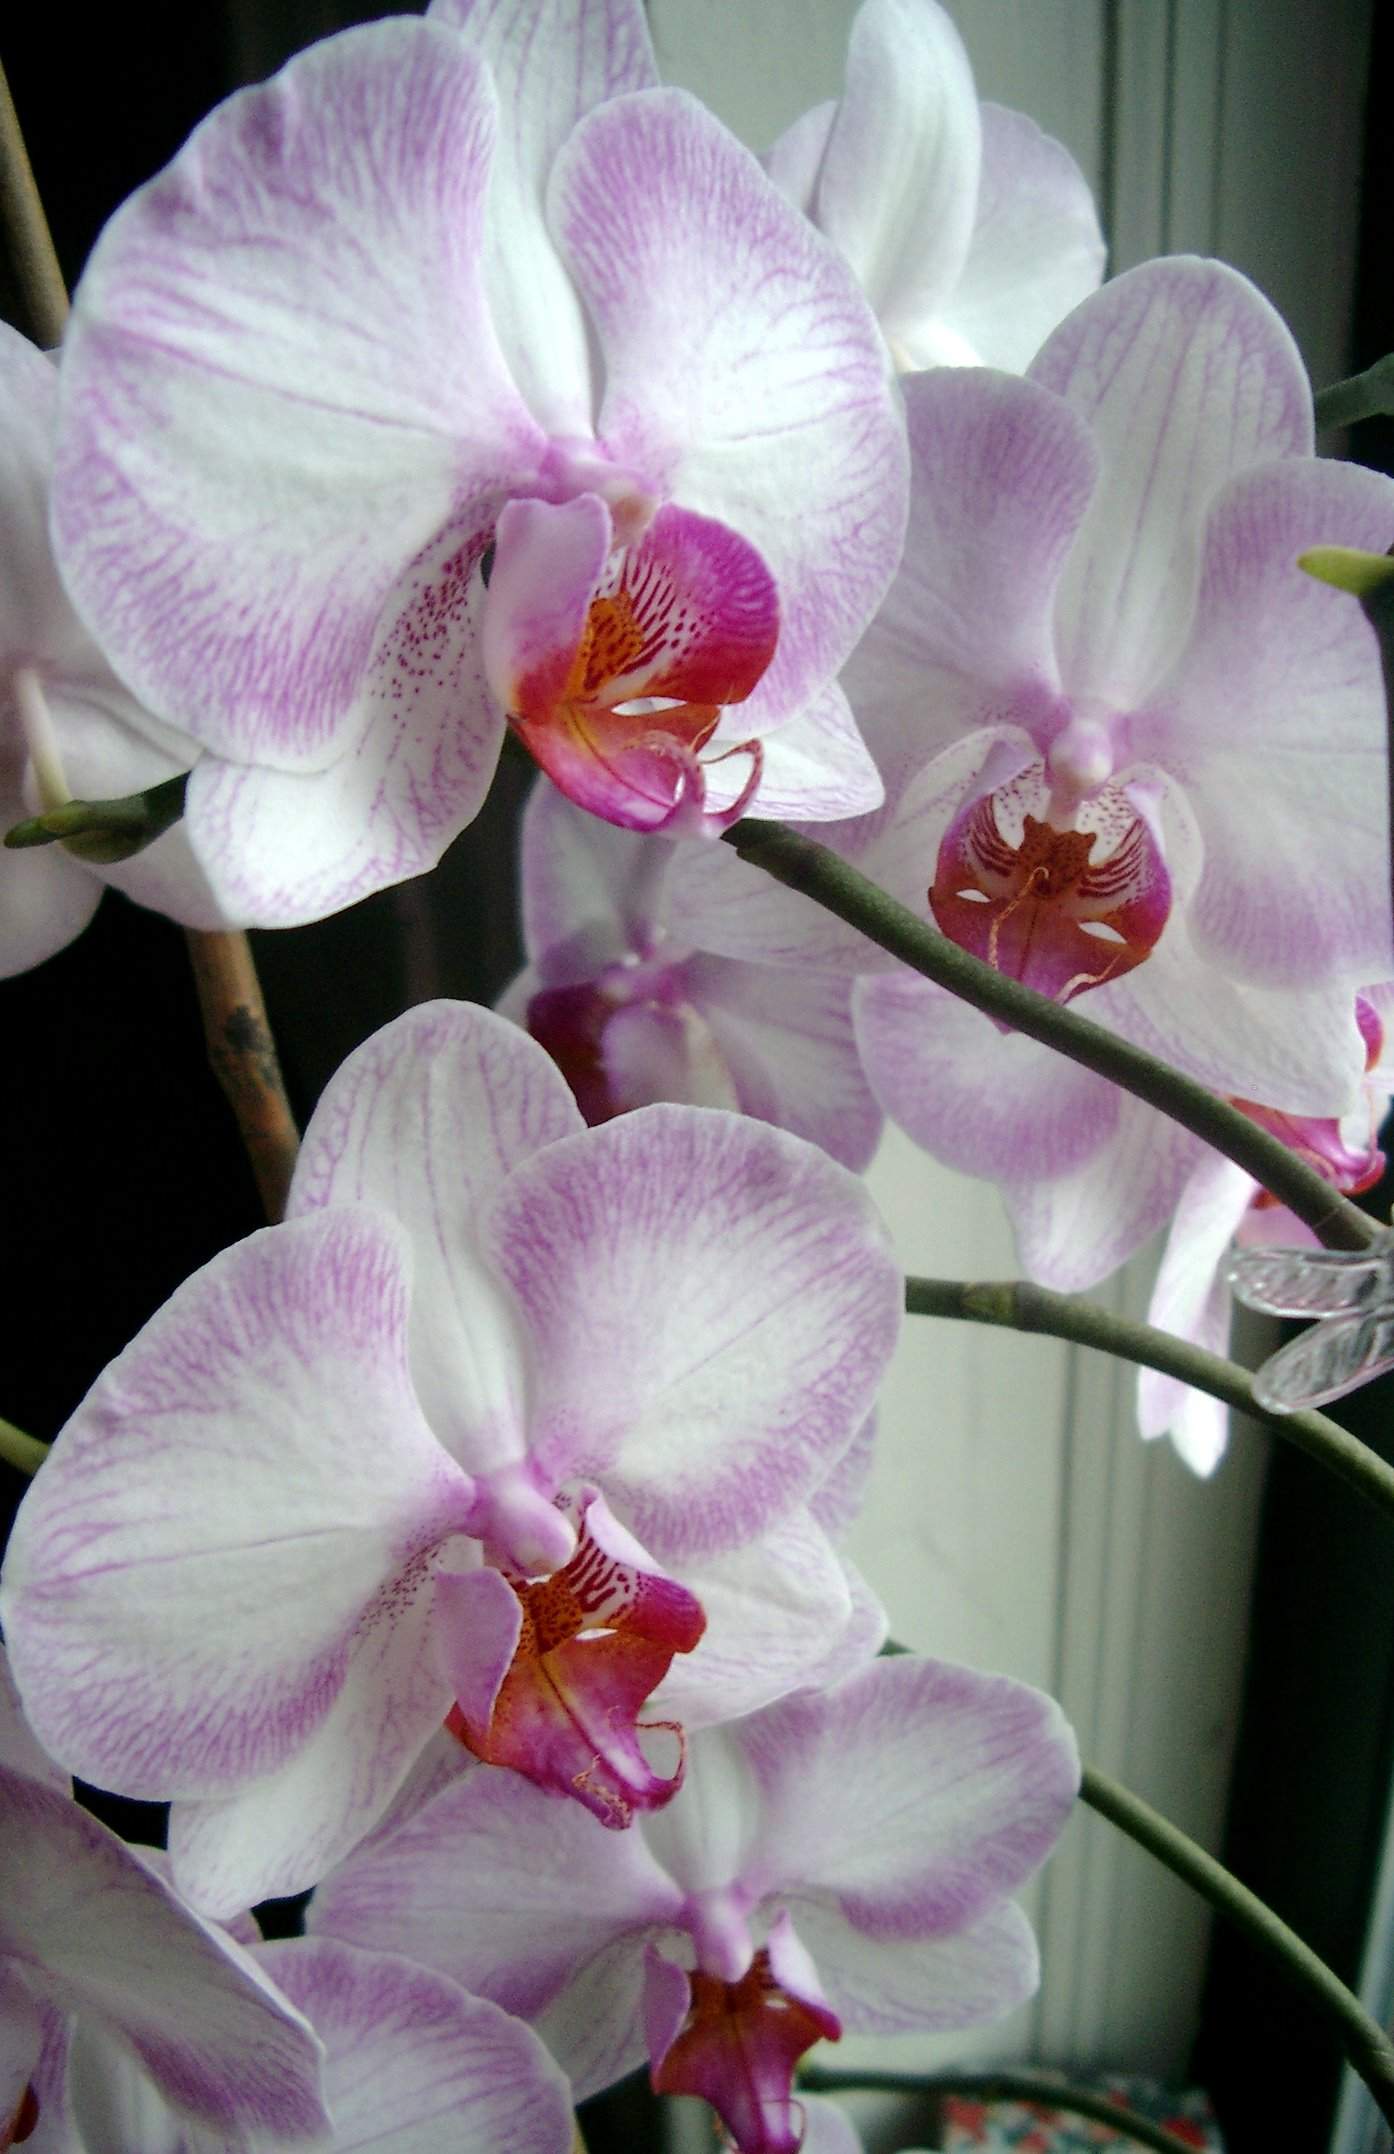 Growing flowers orchid flowers moth izmirmasajfo